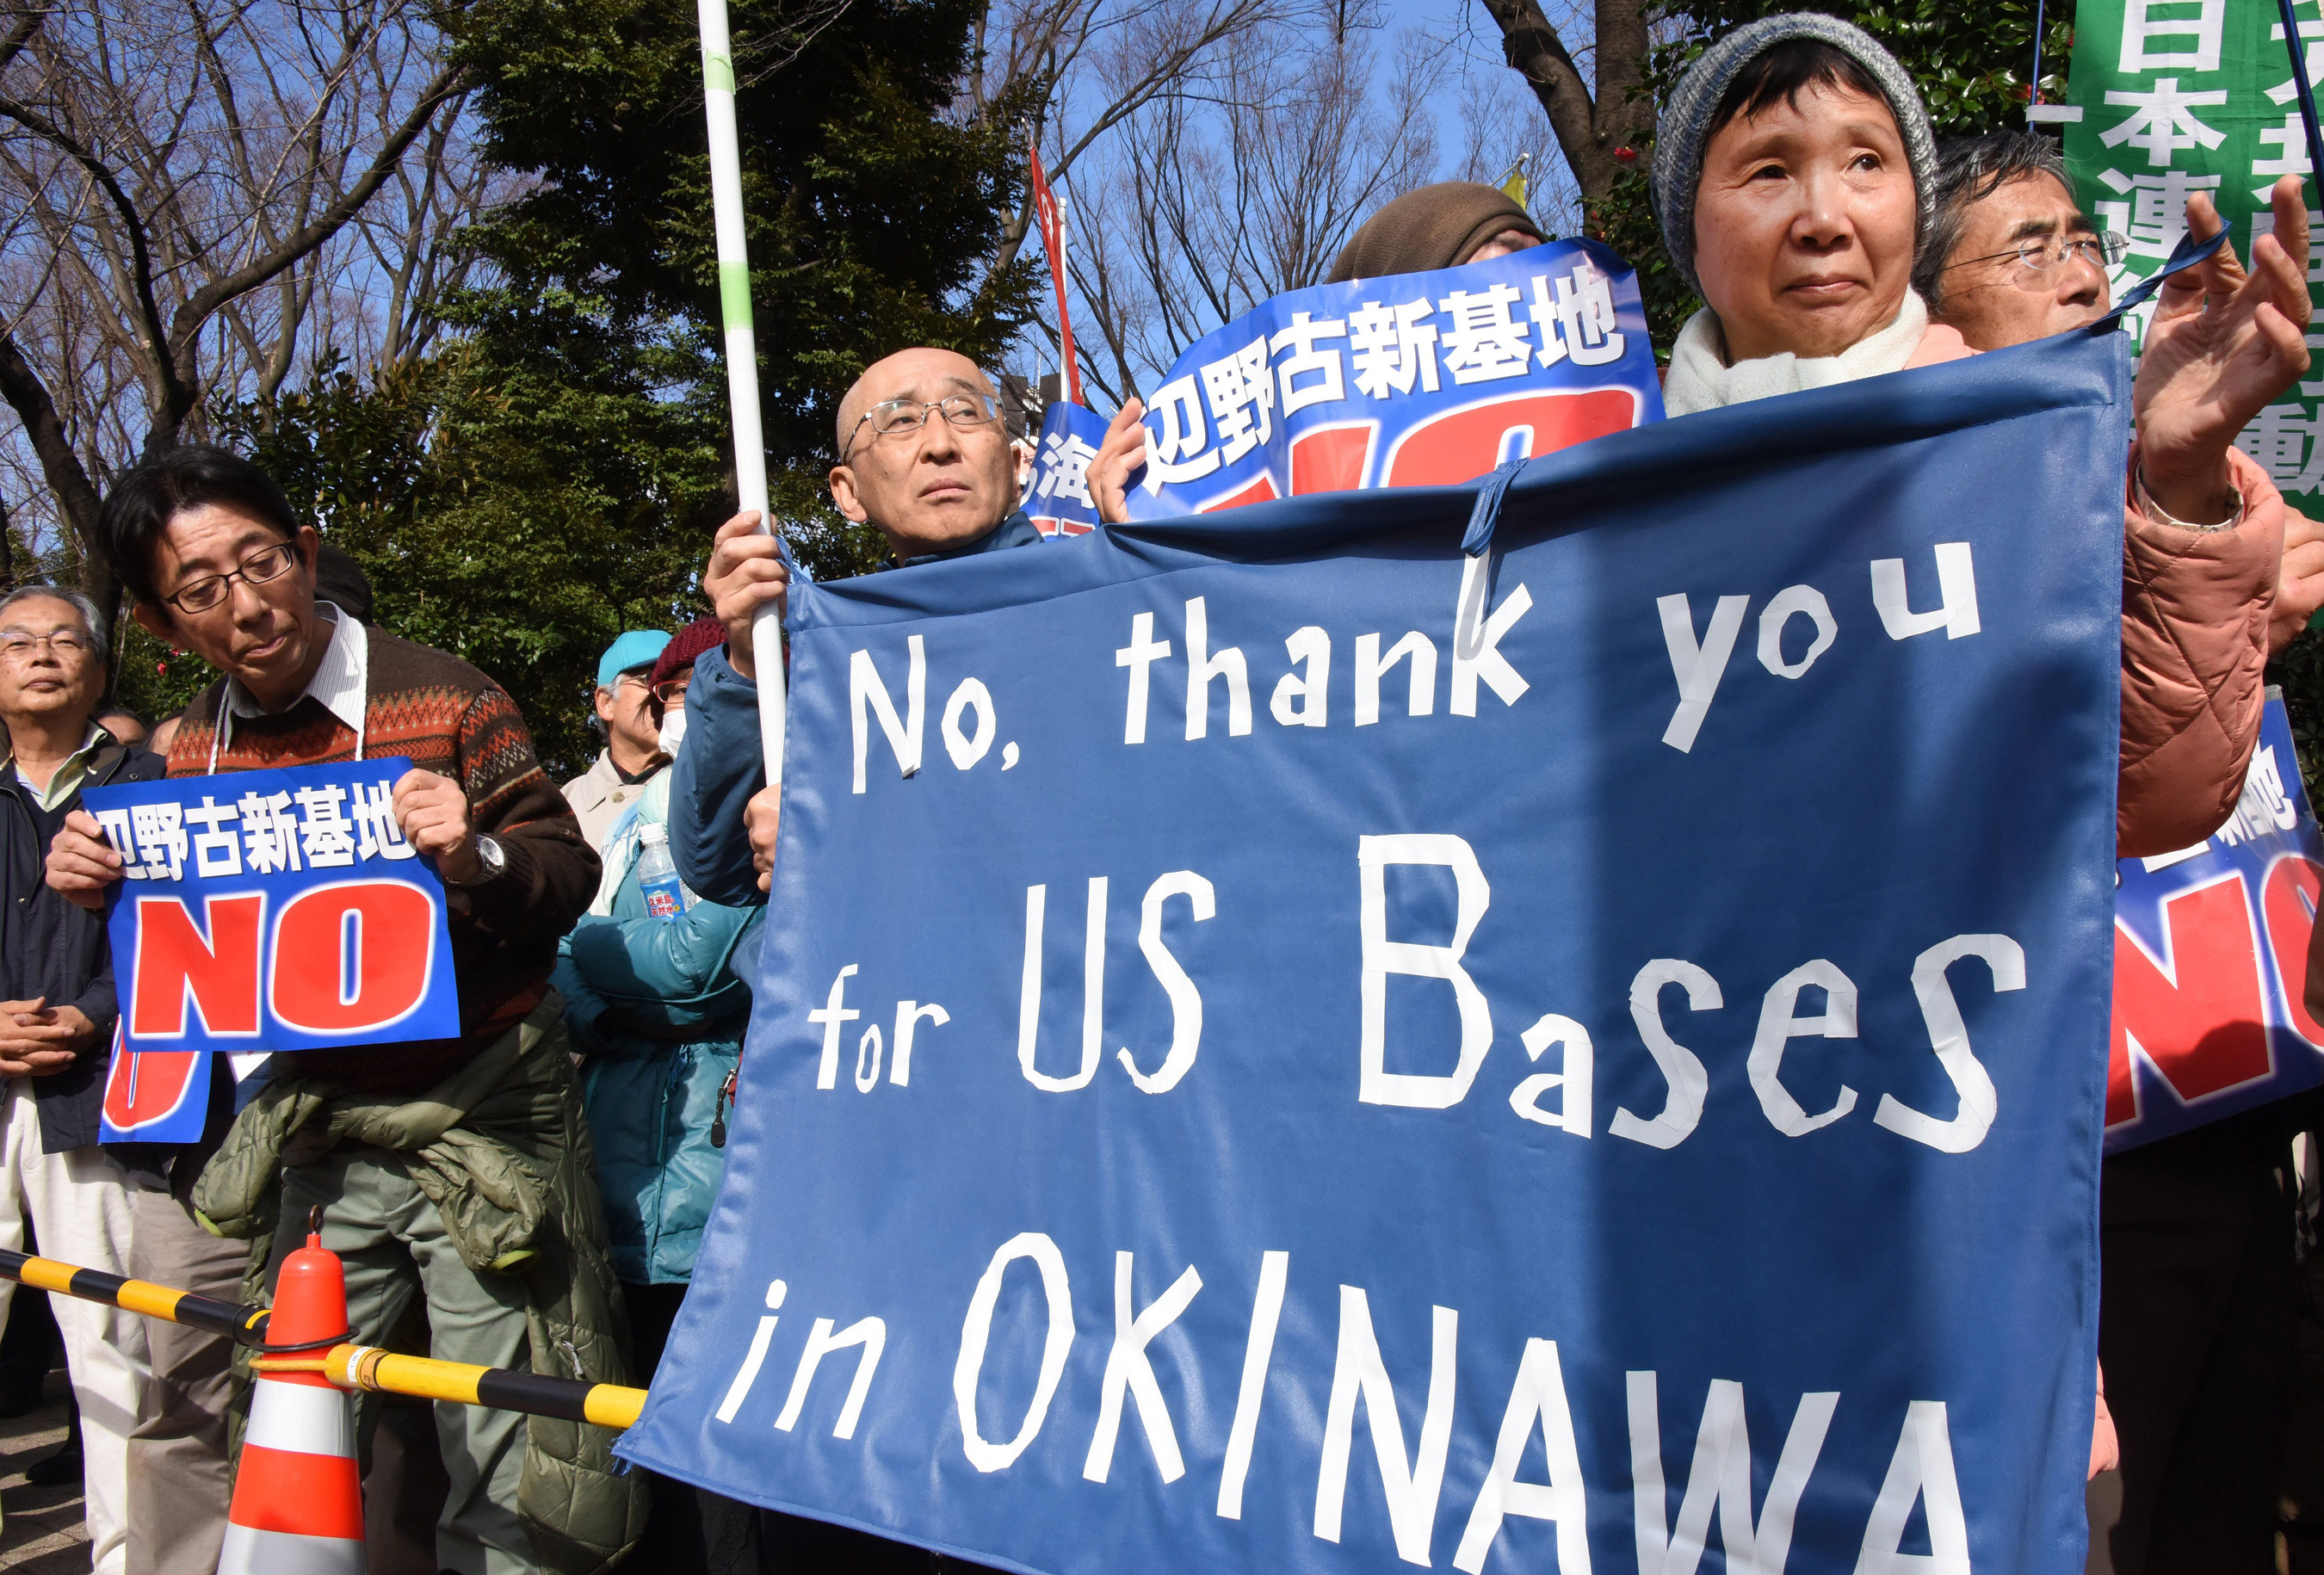 Japan protests US soldier rape case